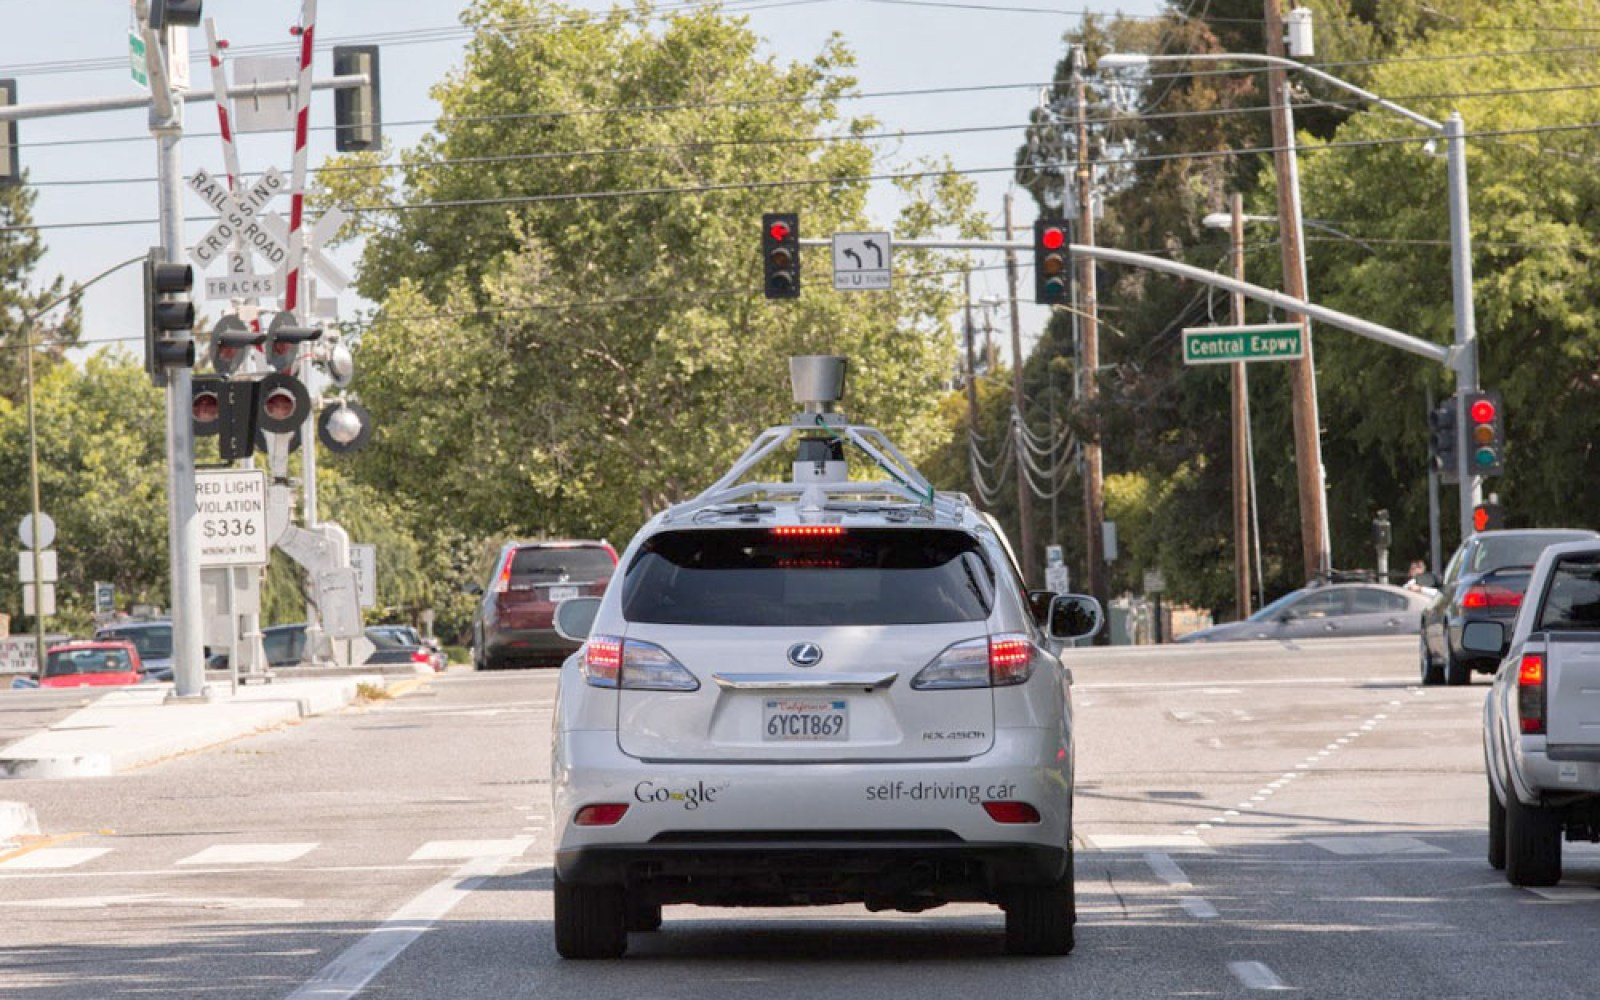 Humans at fault as California's DMV releases details of six self driving car accidents